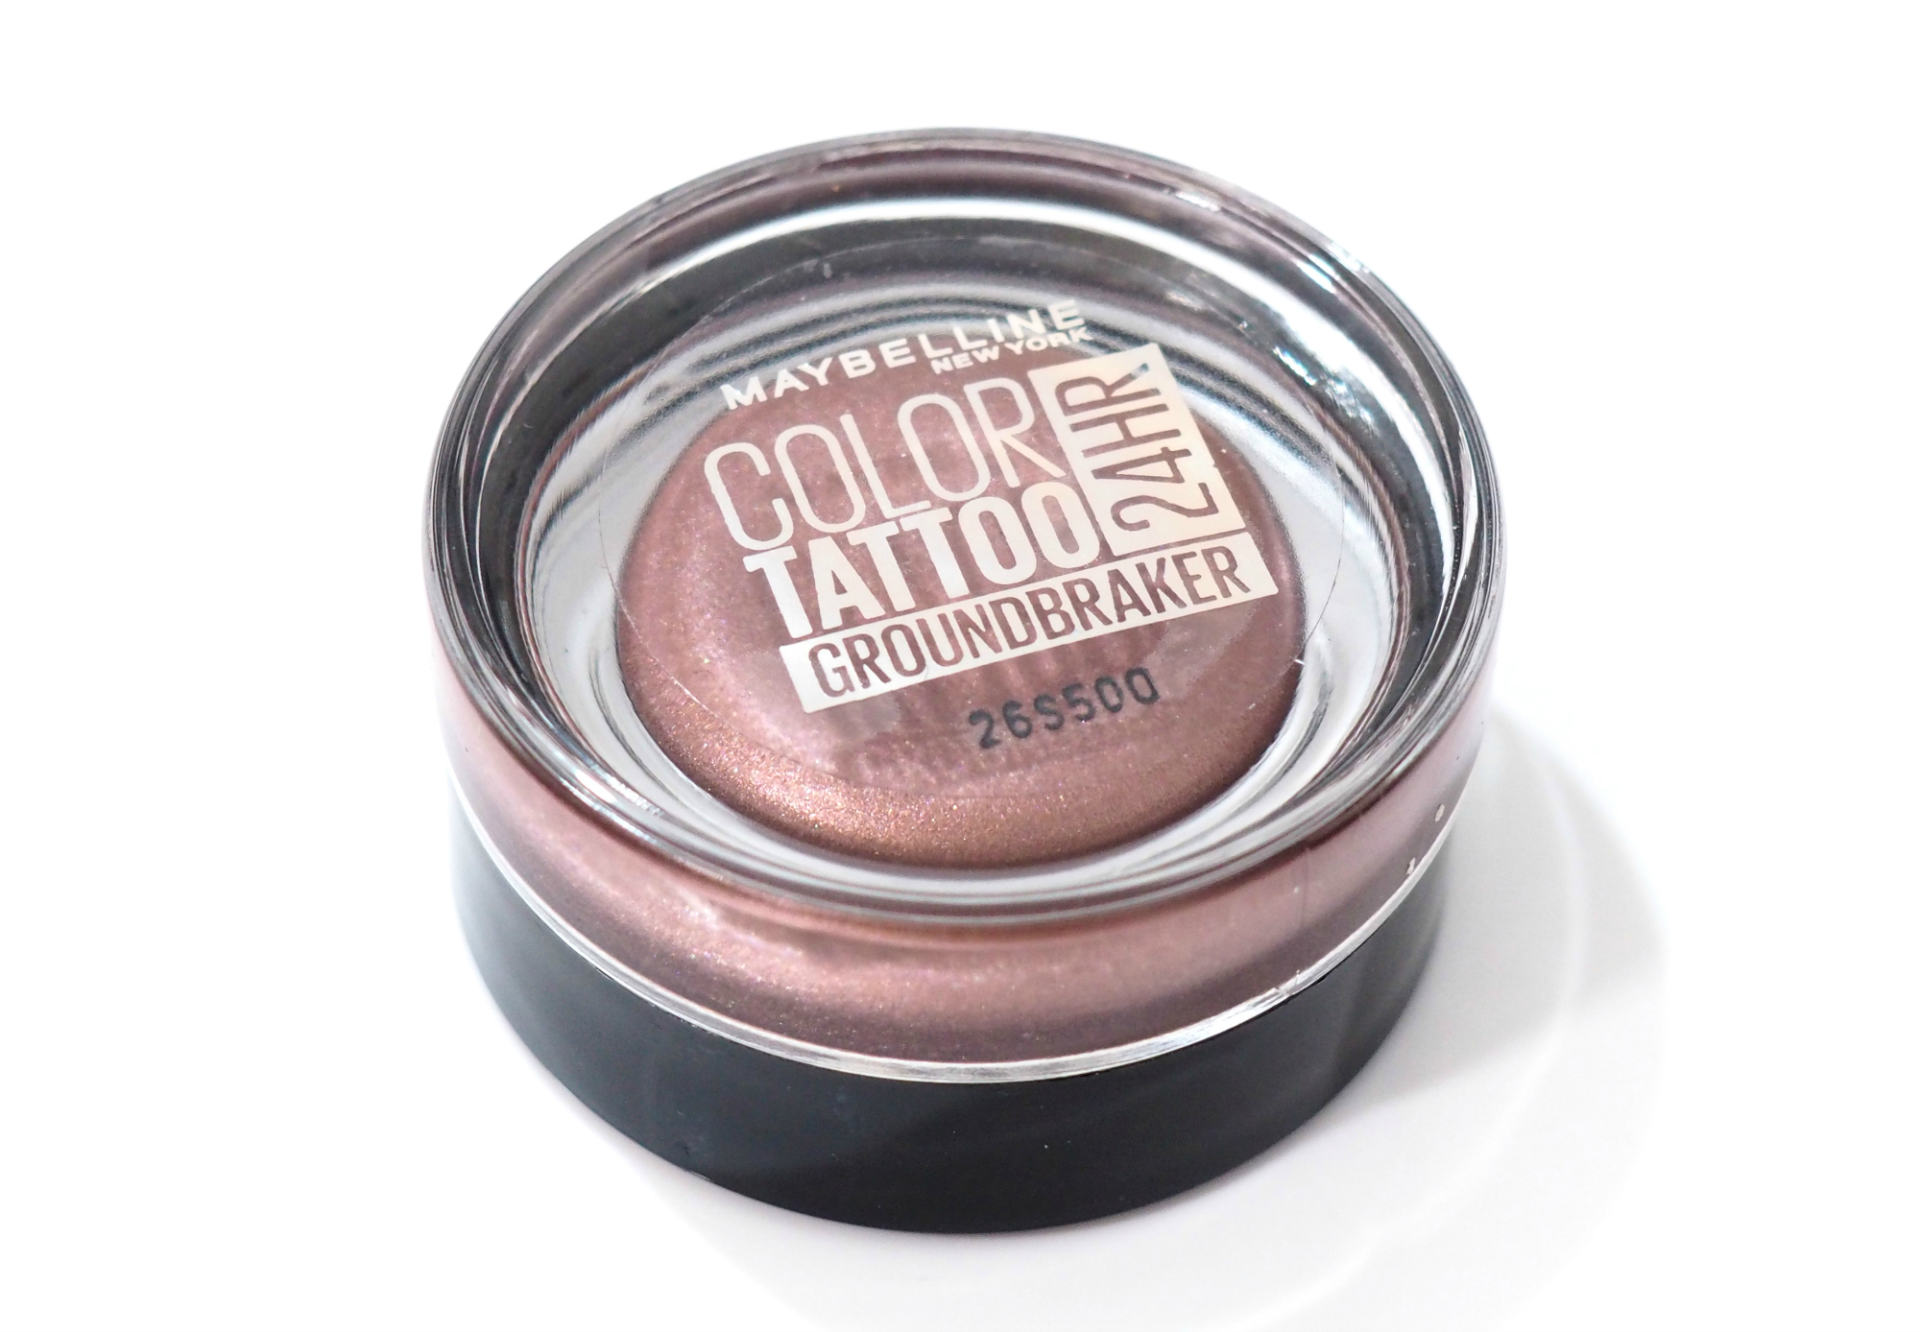 Maybelline Groundbreaker 24hr Color Tattoo Review / Swatches